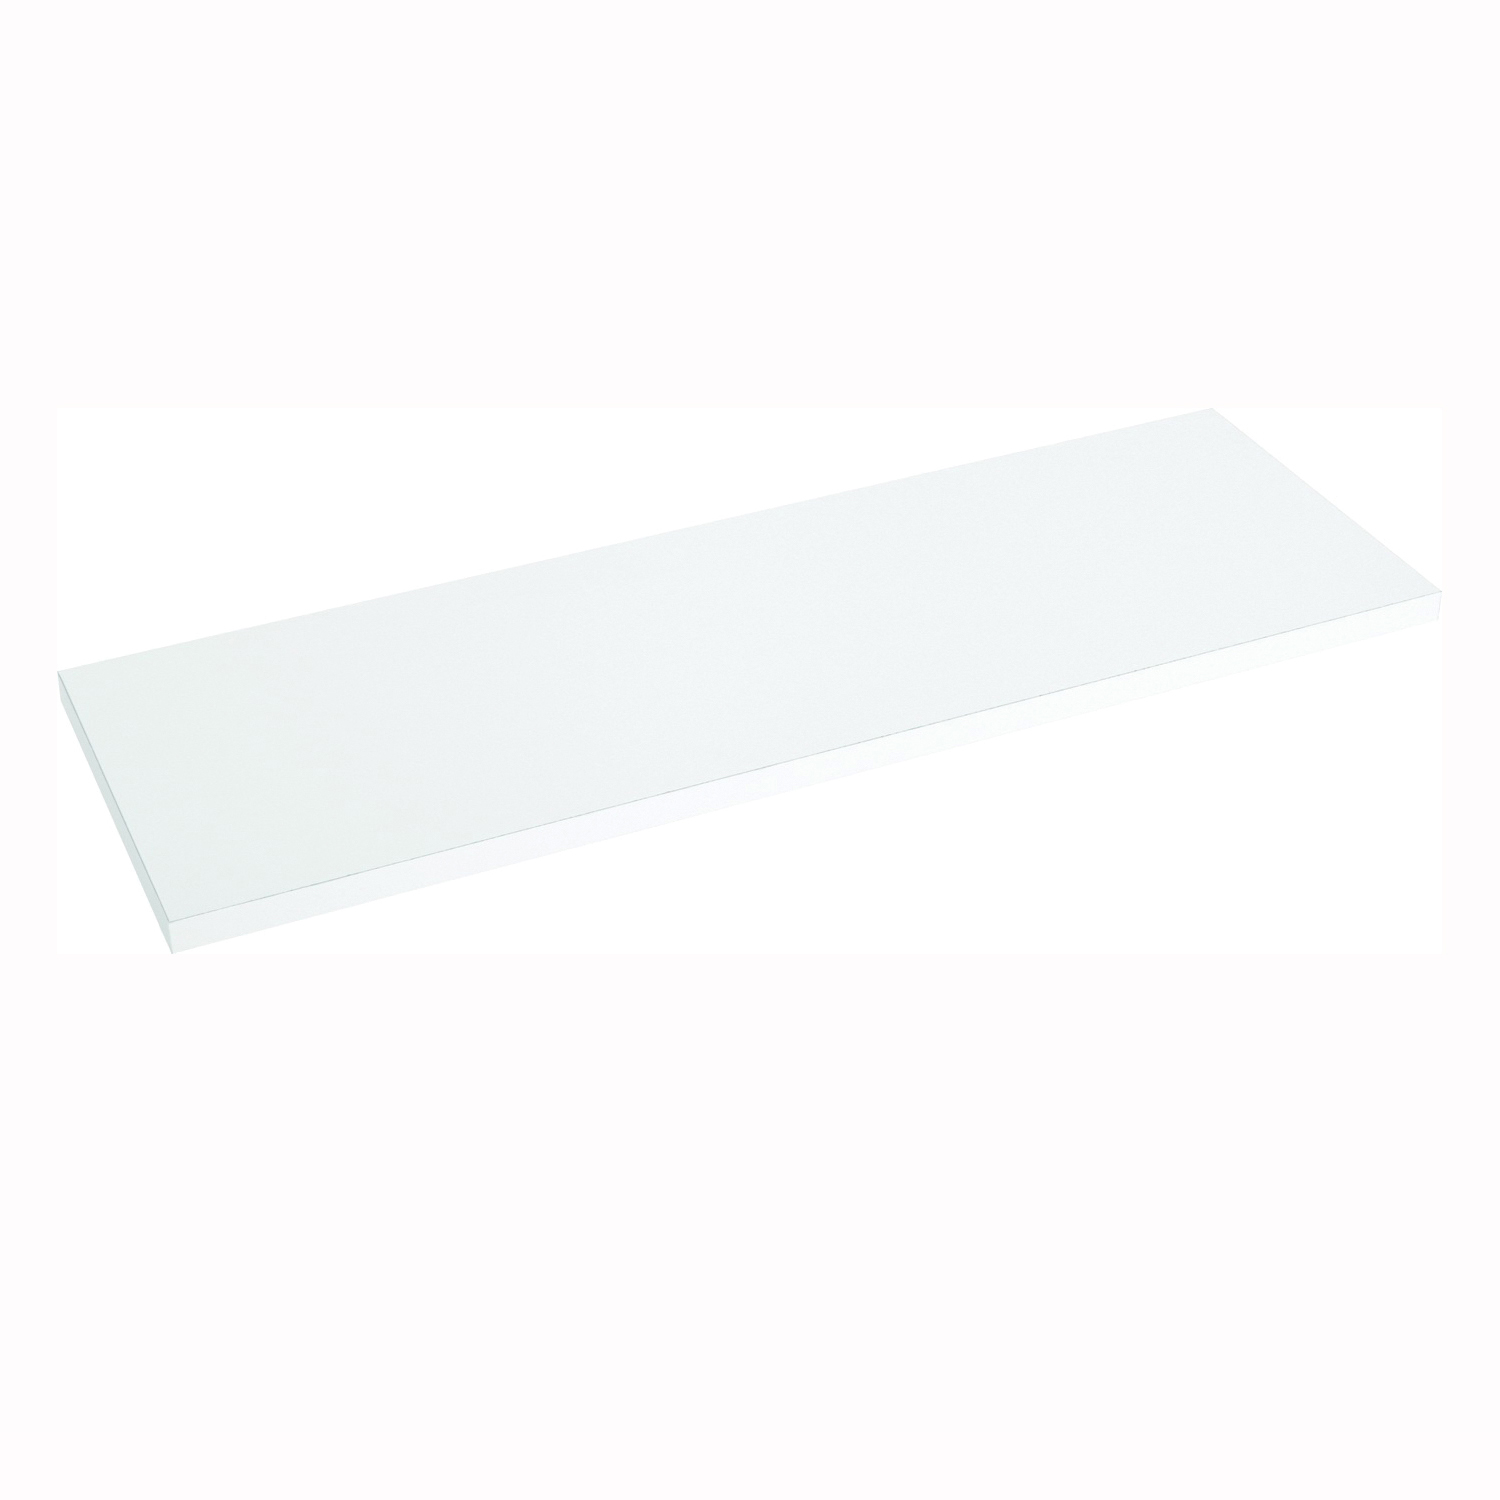 Picture of Knape & Vogt 1980 WH 12X72 Shelf Board, 200 lb, 5-Shelf, 71-7/16 in L, 11-3/4 in W, Particleboard